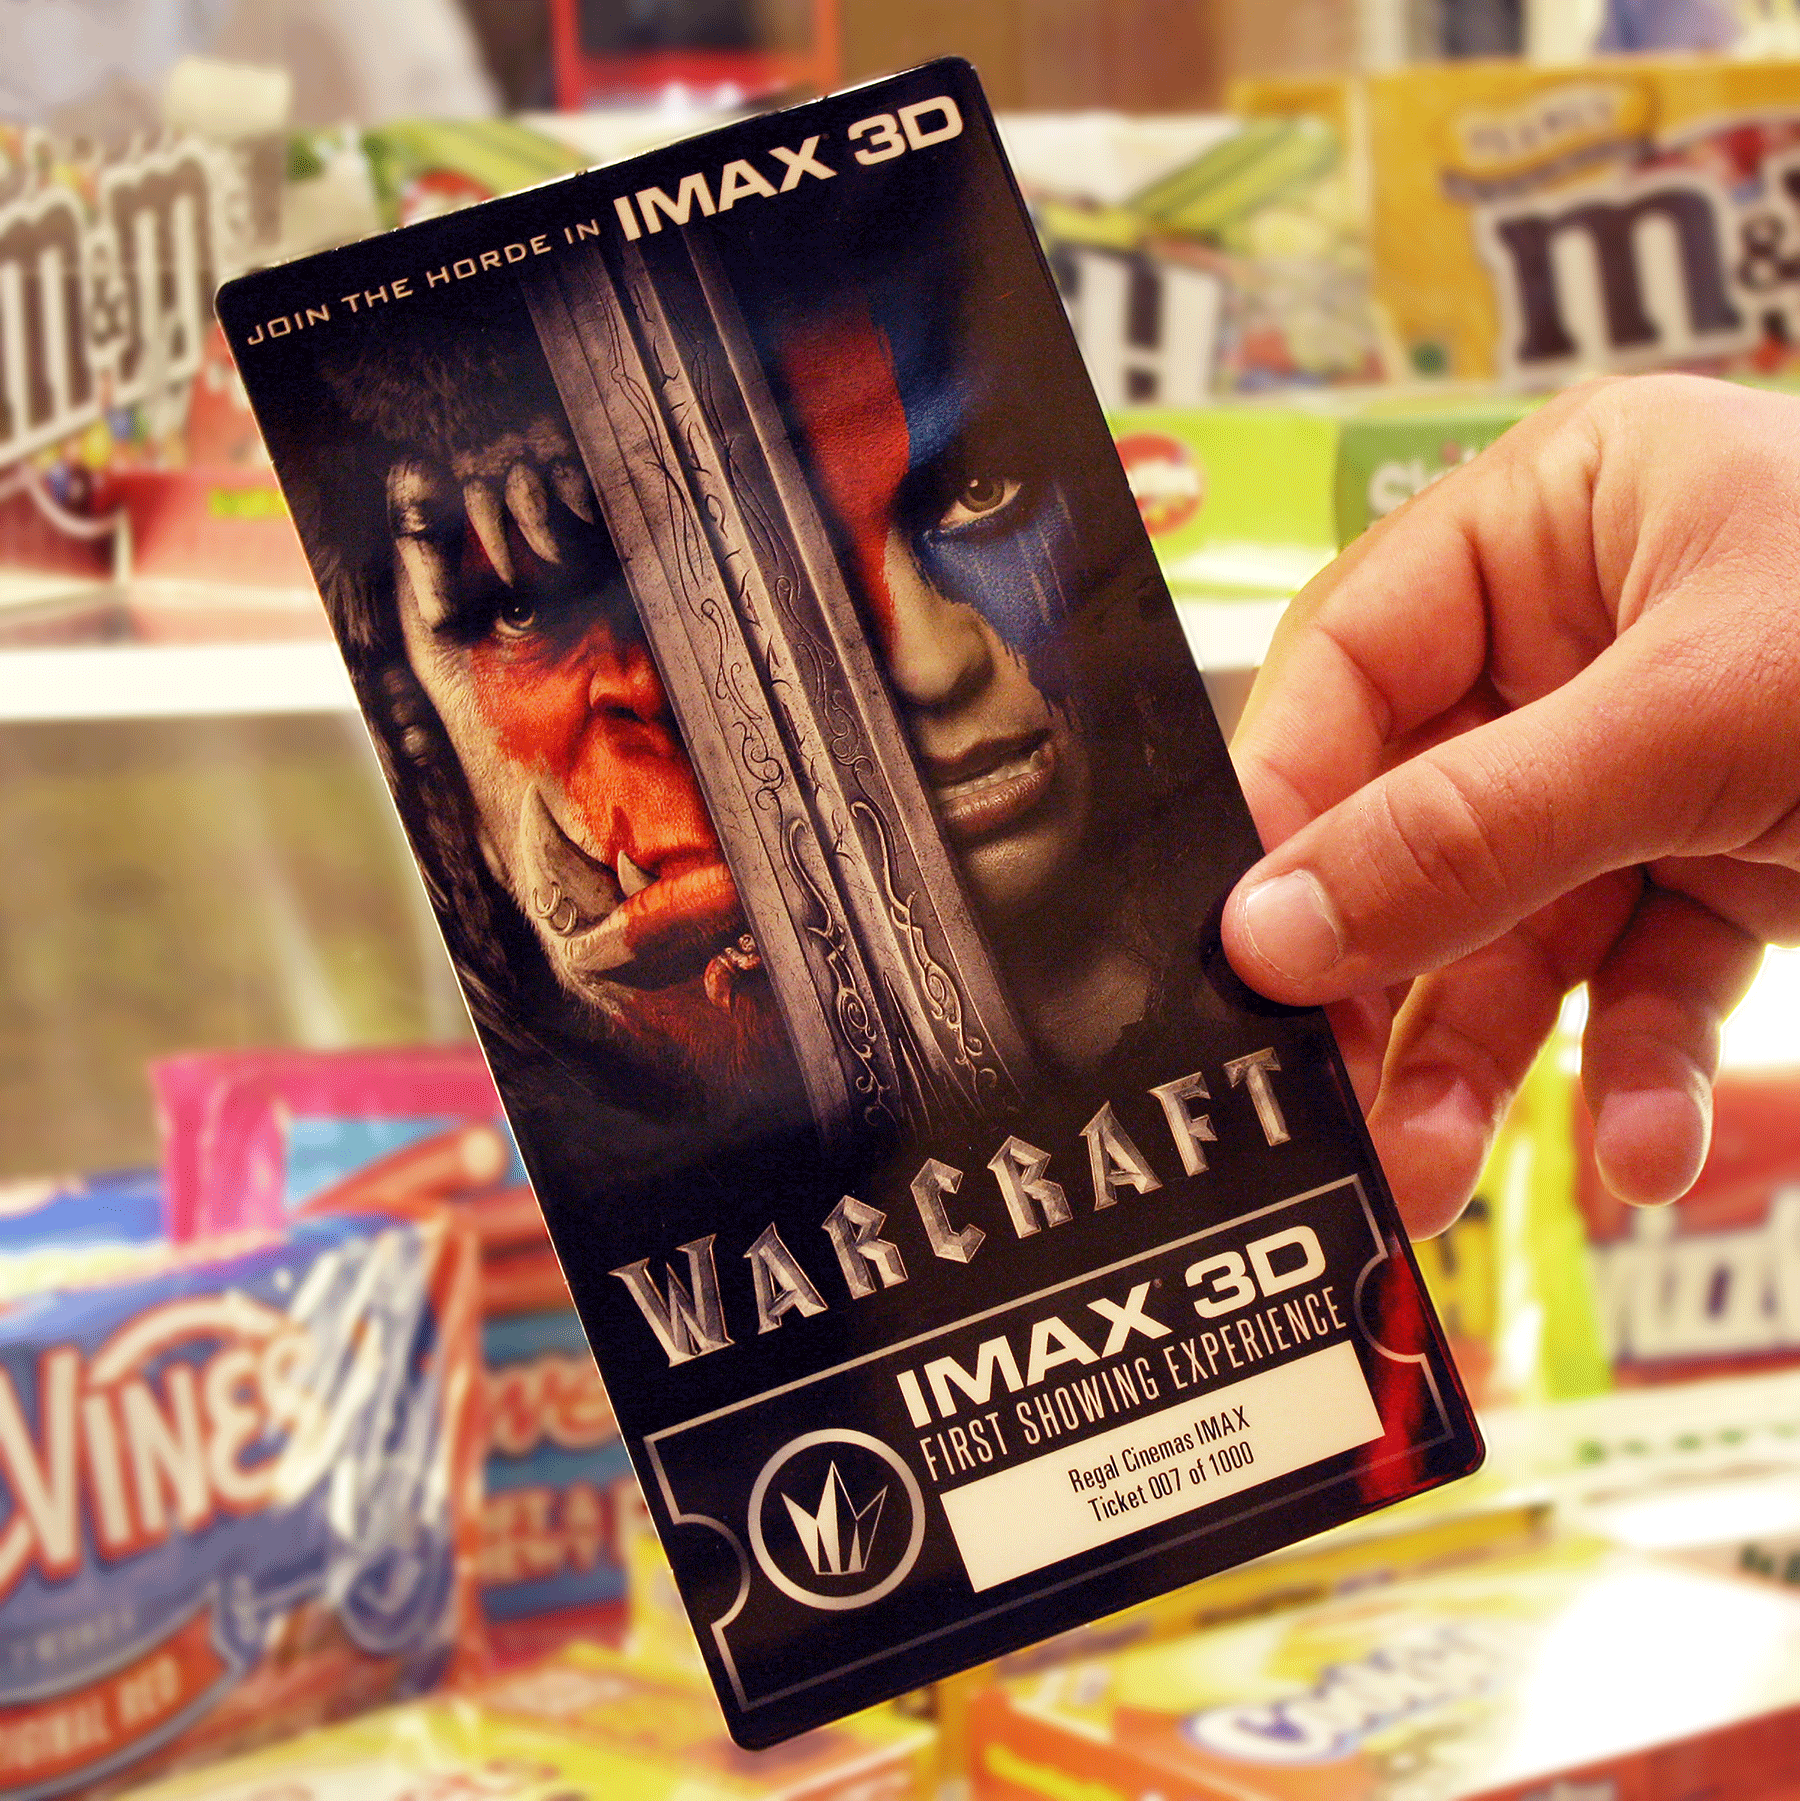 Post a photo of your Warcraft IMAX collectible tickets from